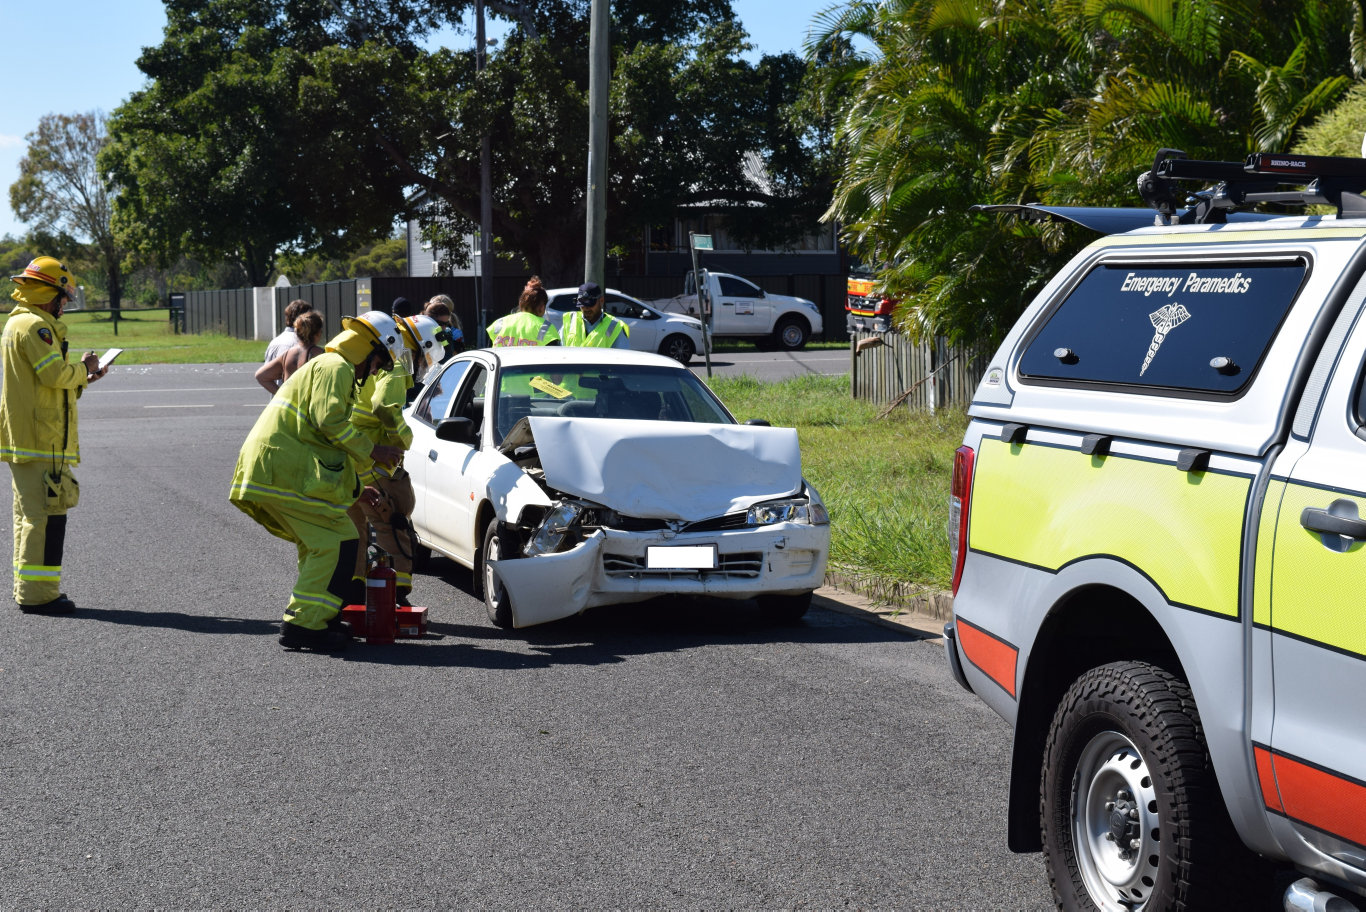 Emergency Services are on their way to the scene of a car crash in Maryborough.